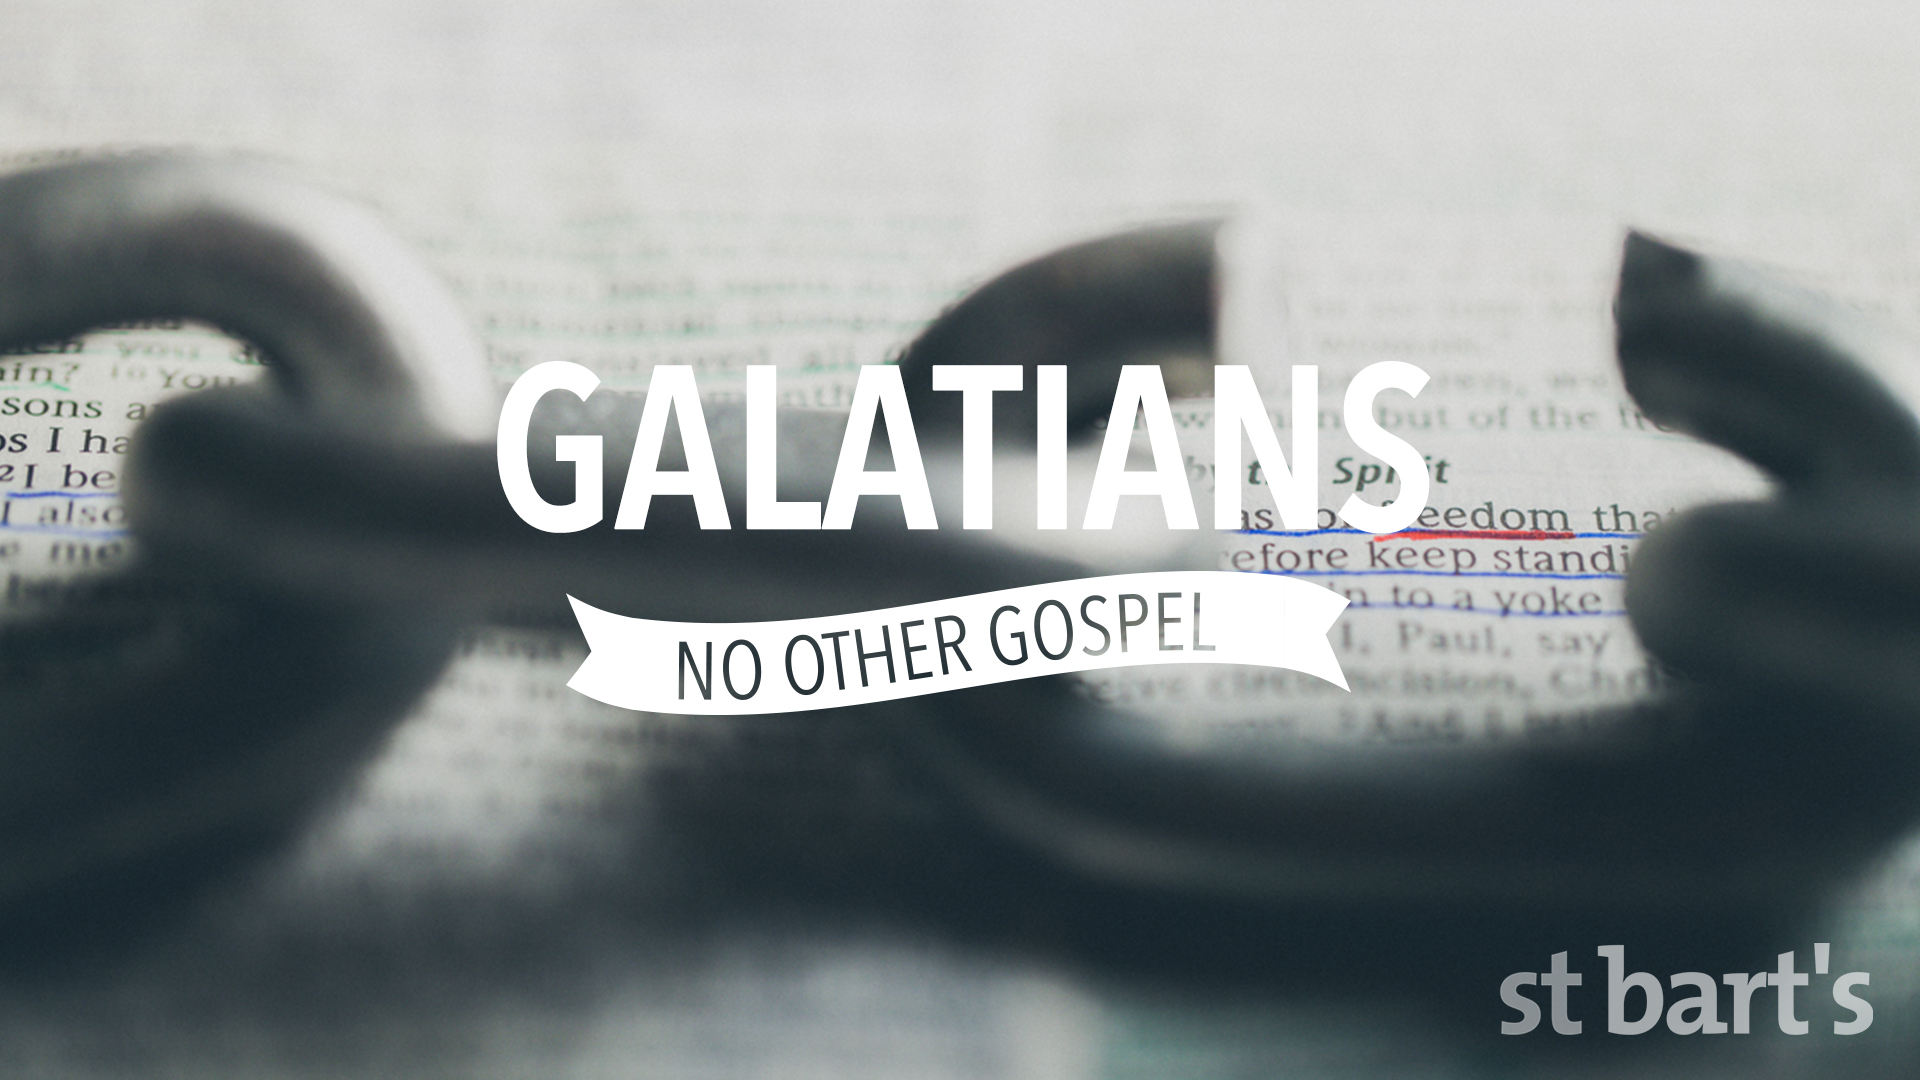 Galatians - No Other Gospel